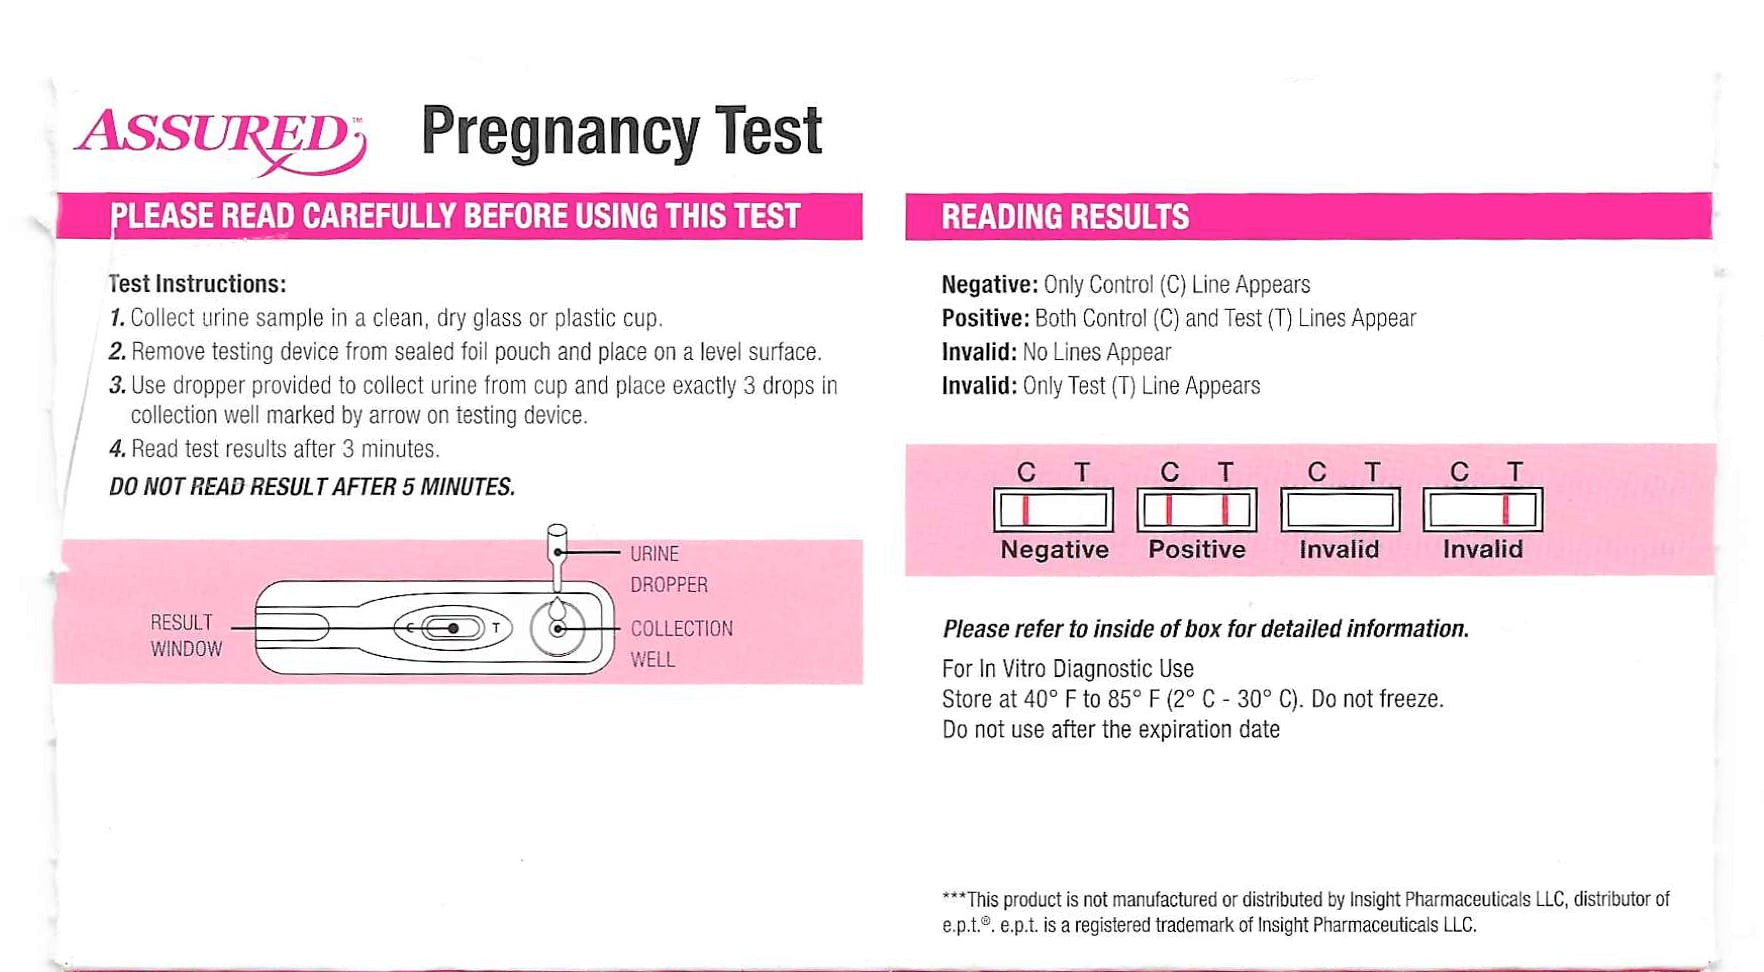 Assured Pregnancy Test How to